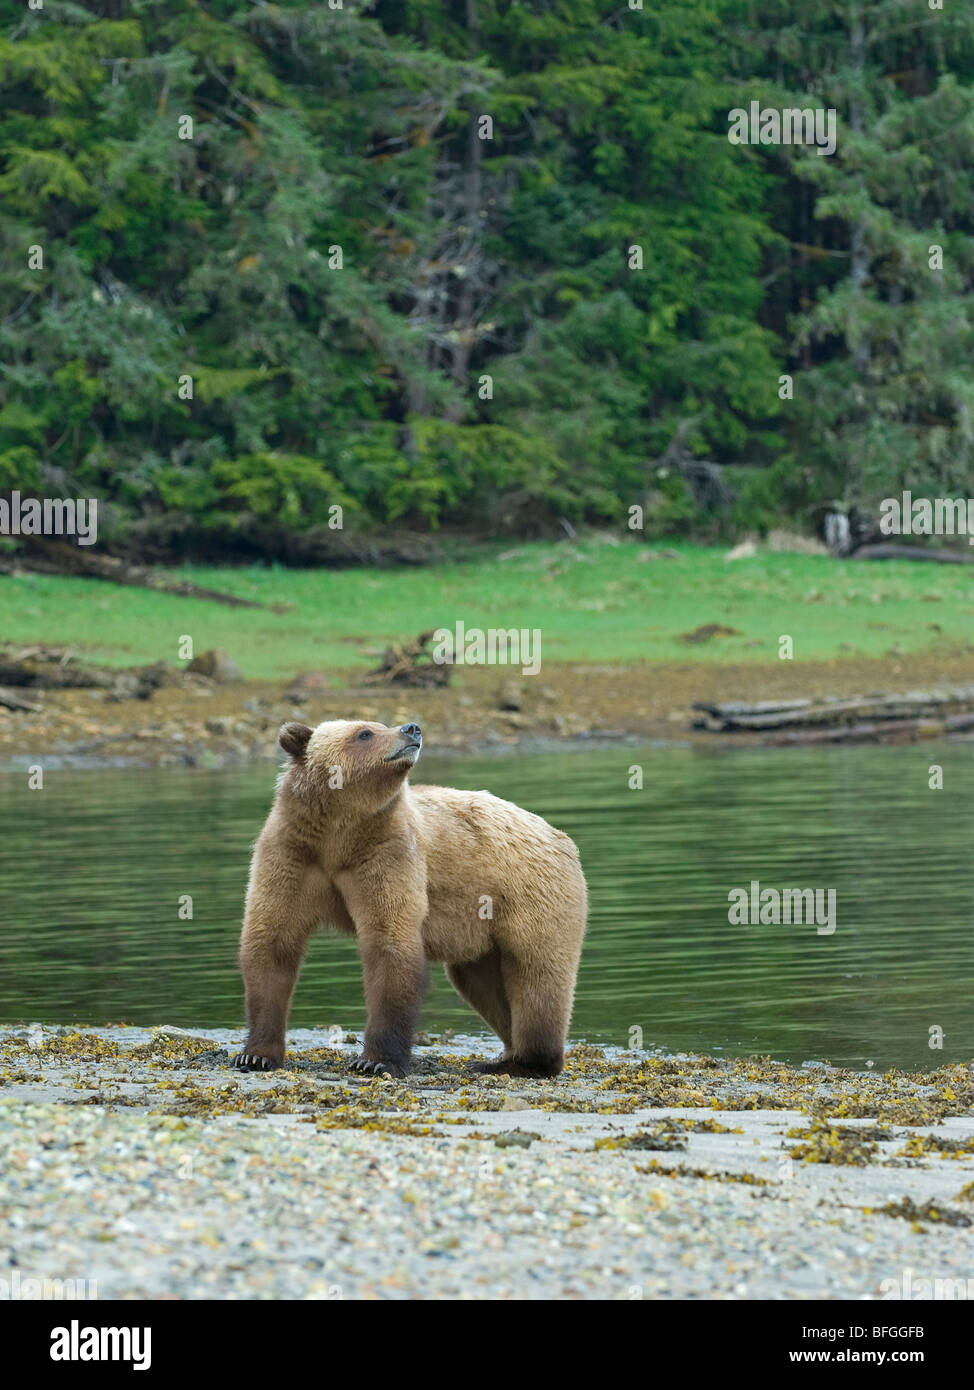 Female Grizzly Bear (Ursus arctos horribilis) sniffs air during mating season at Khutzeymateen Grizzly Bear Sanctuary - Stock Image